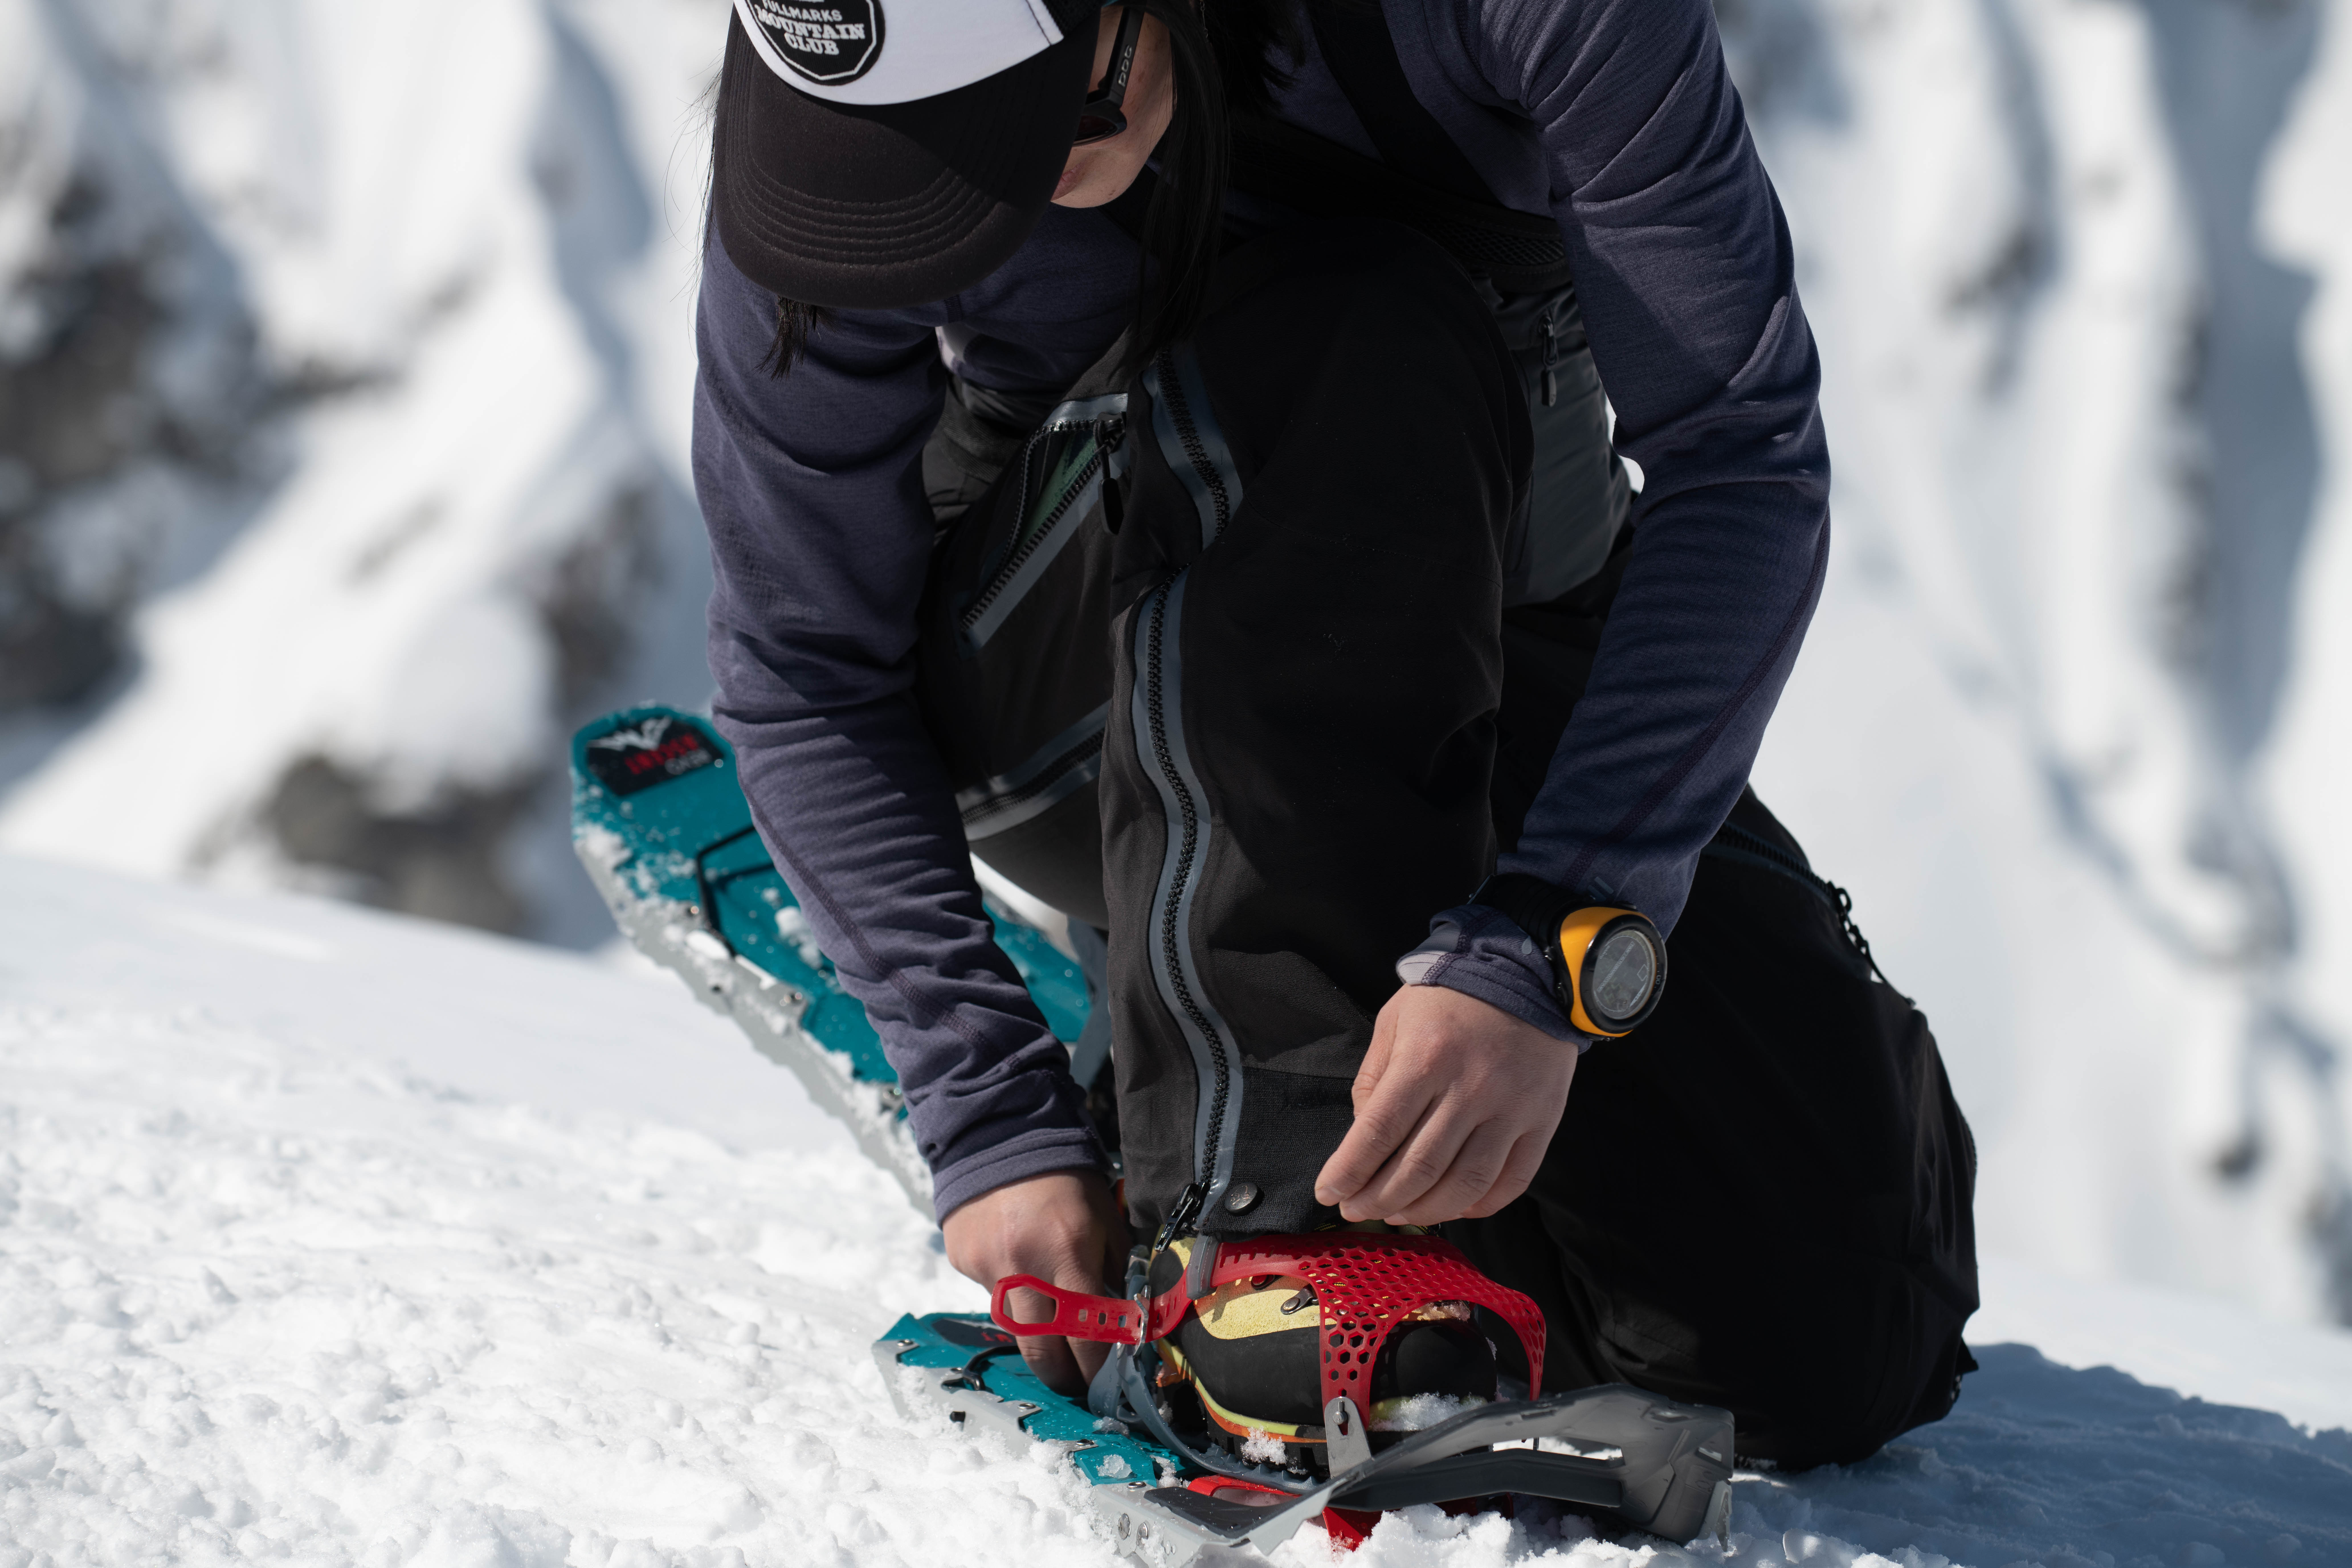 new msr paragon snowshoe binding in Japan